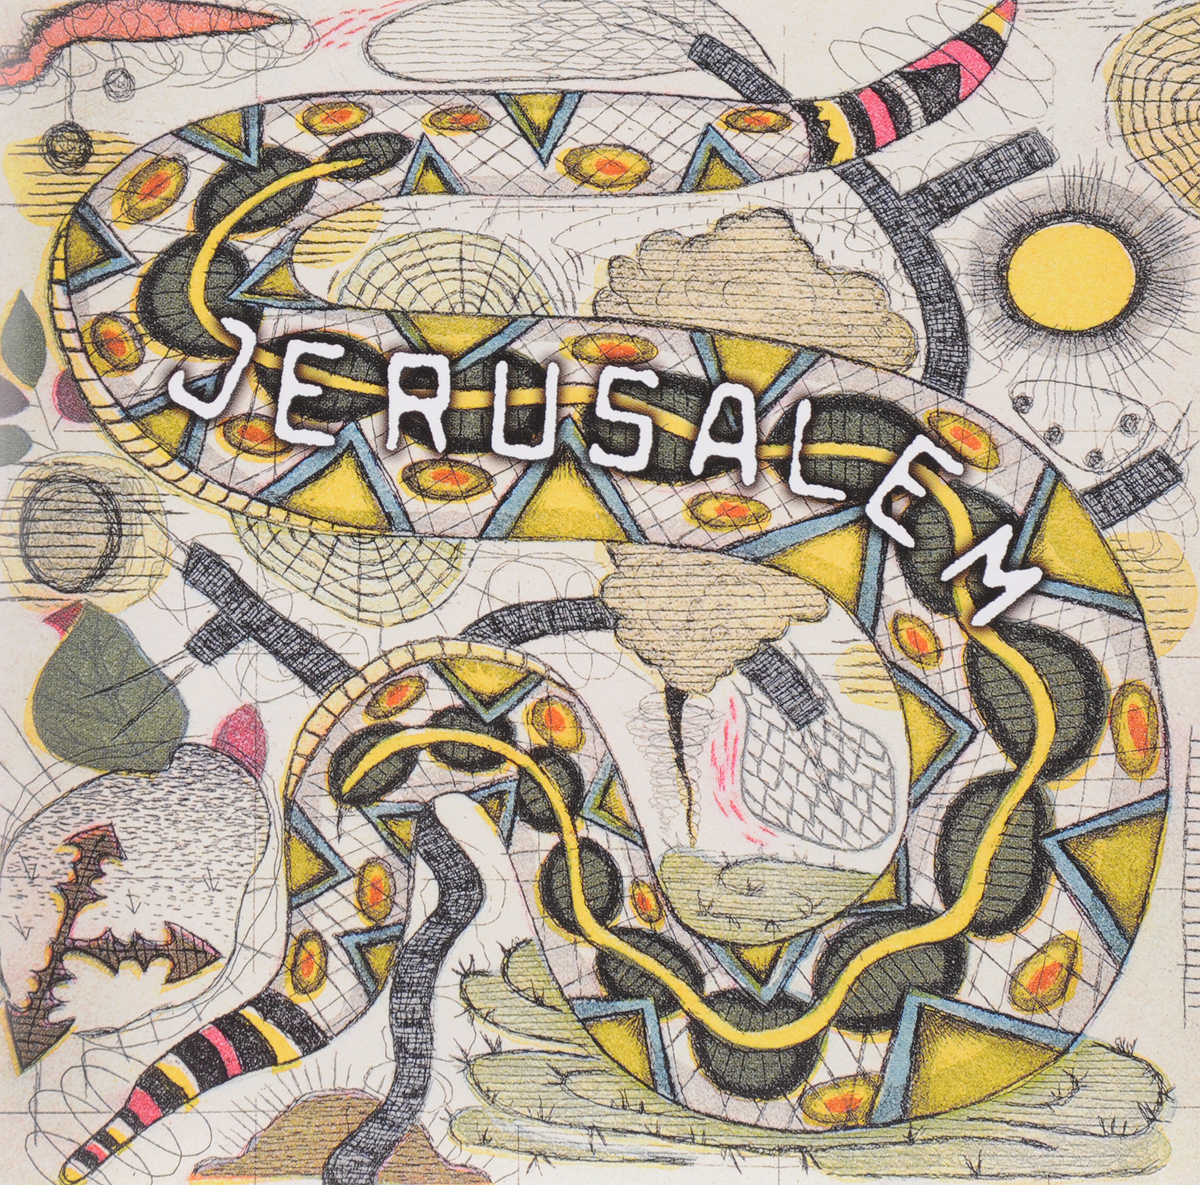 лучшая цена Стив Эрль Steve Earle. Jerusalem